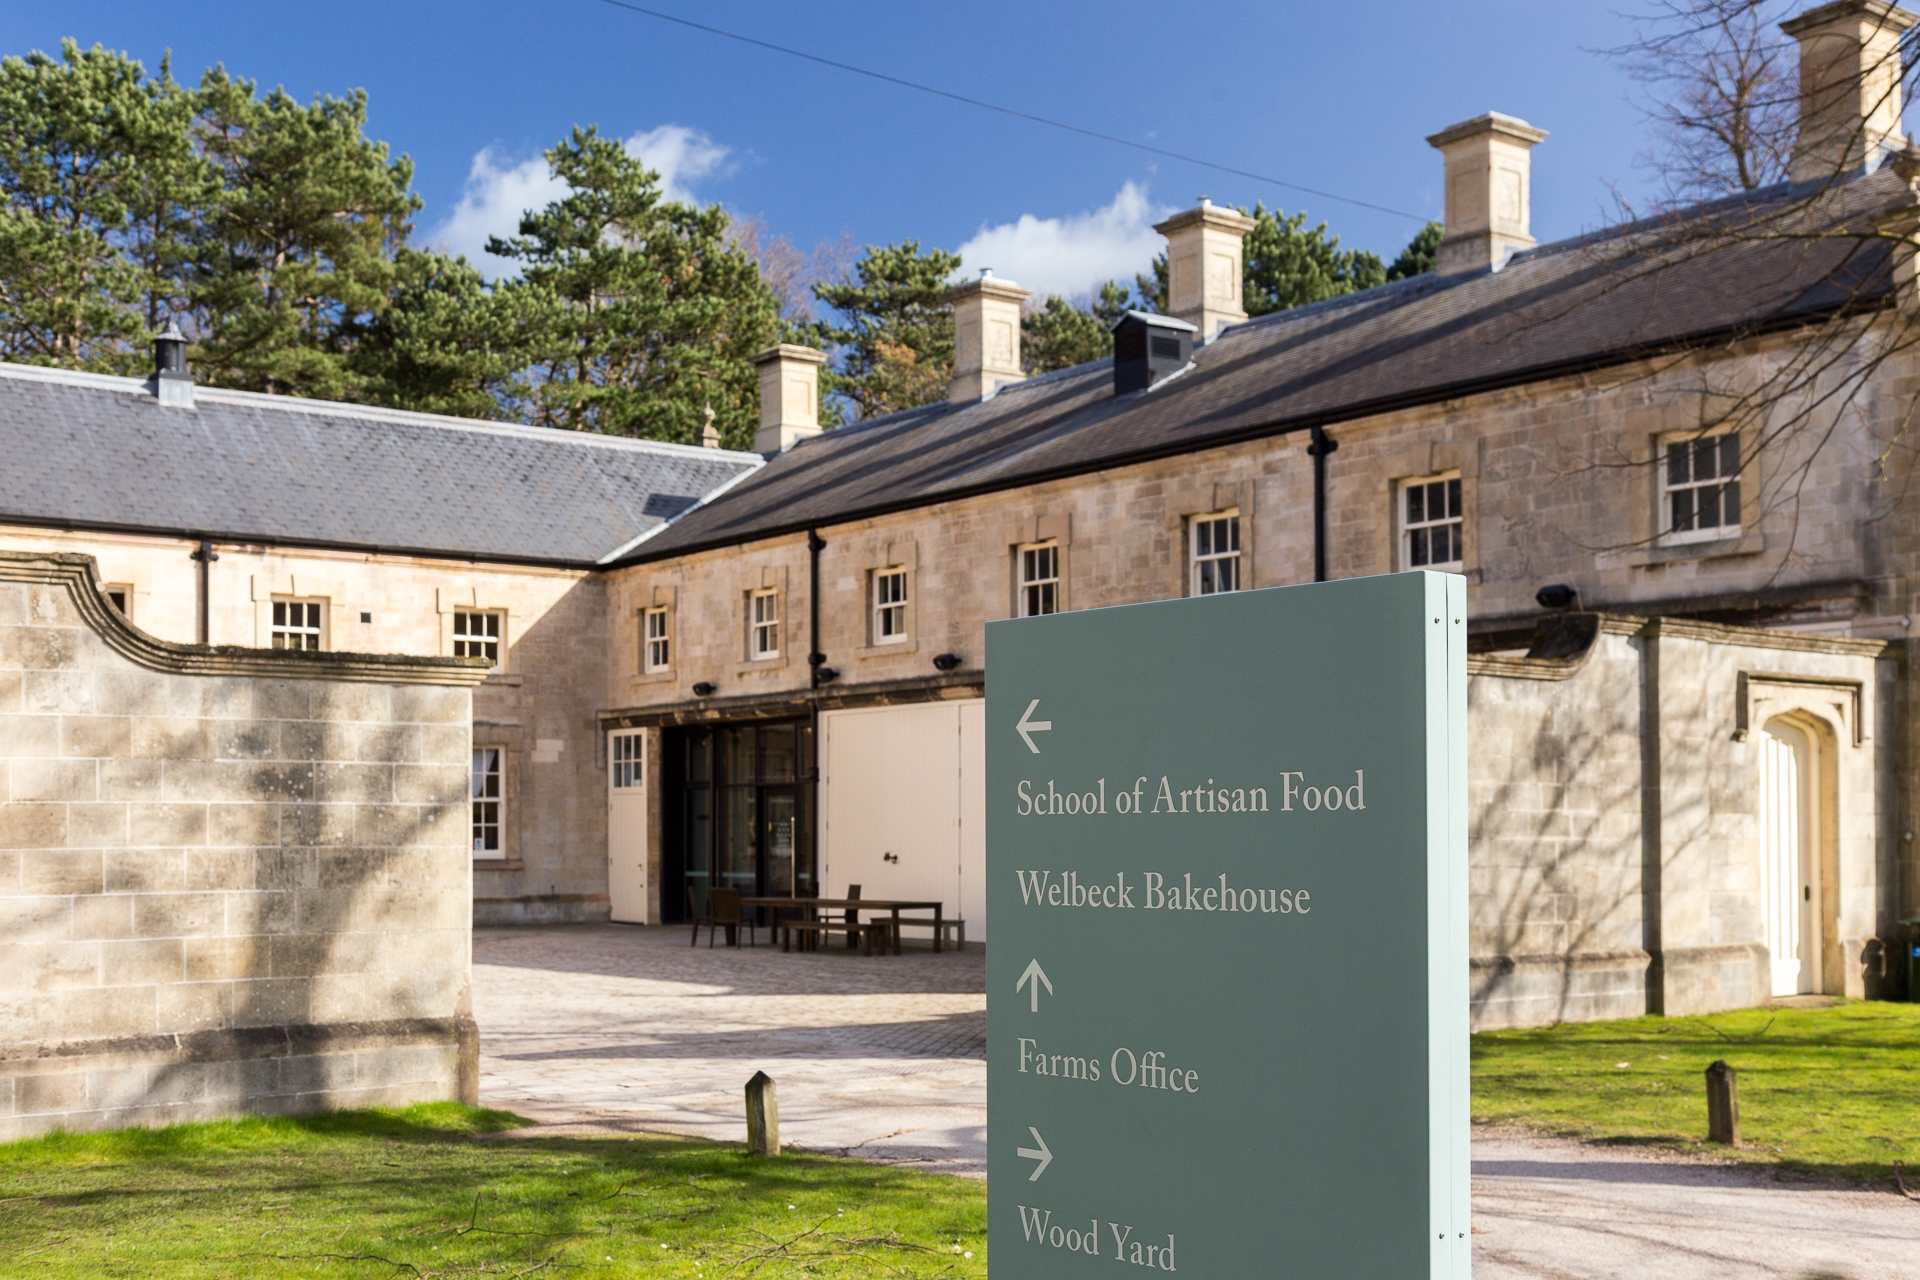 The School of Artisan Food opened its doors in 2009, the first place ever in the UK dedicated solely to the teaching of traditional breadmaking, cheesemaking and butchery skills.